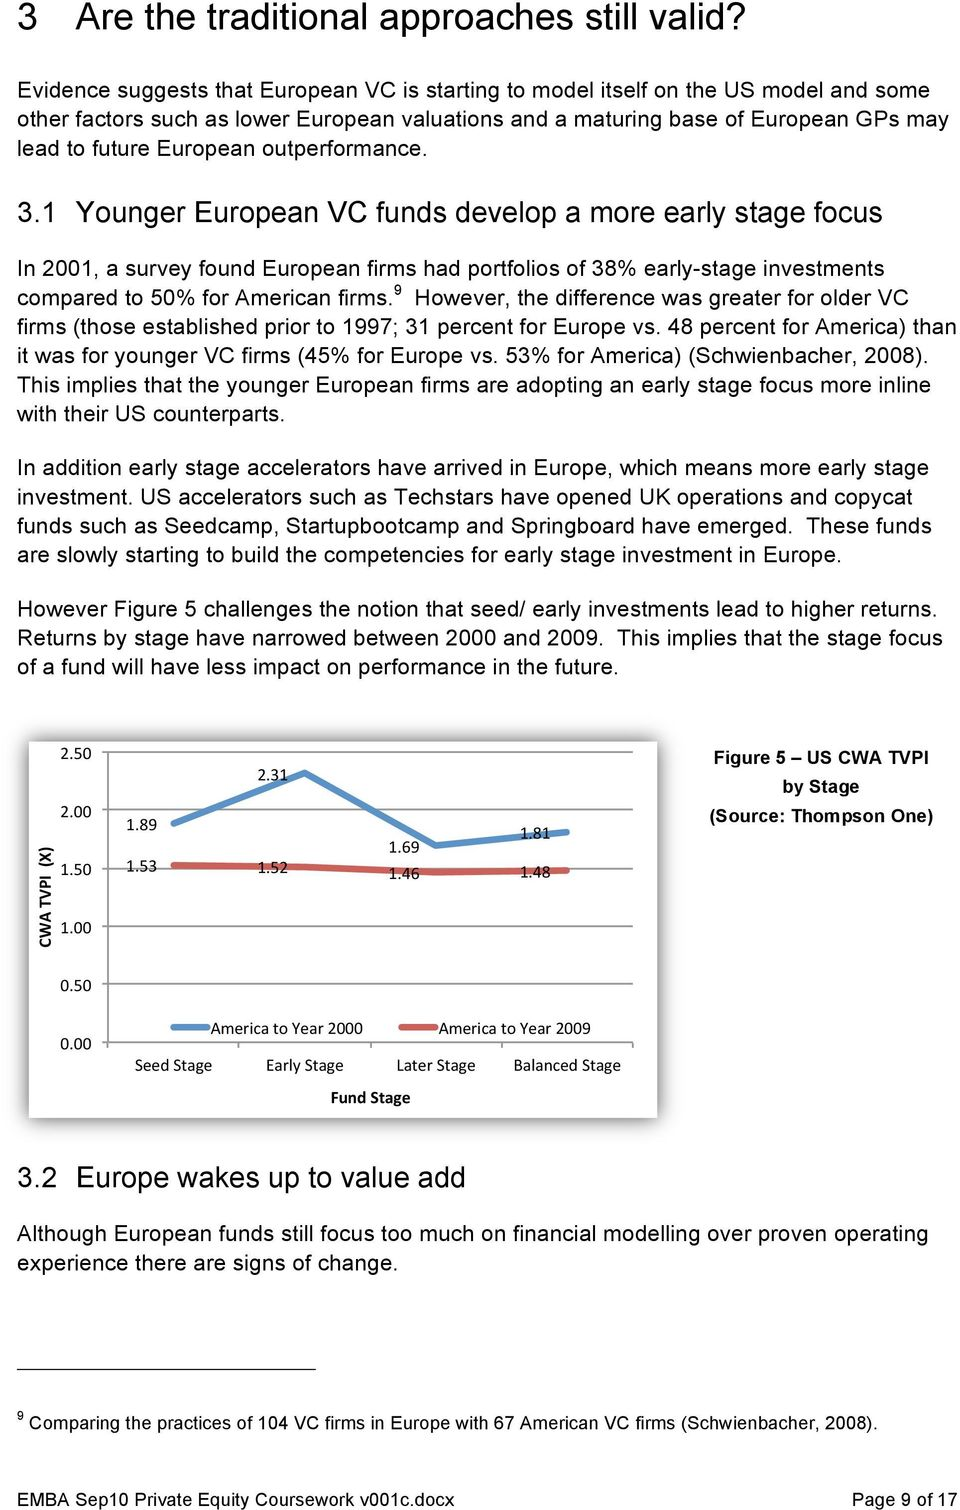 outperformance. 3.1 Younger European VC funds develop a more early stage focus In 2001, a survey found European firms had portfolios of 38% early-stage investments compared to 50% for American firms.